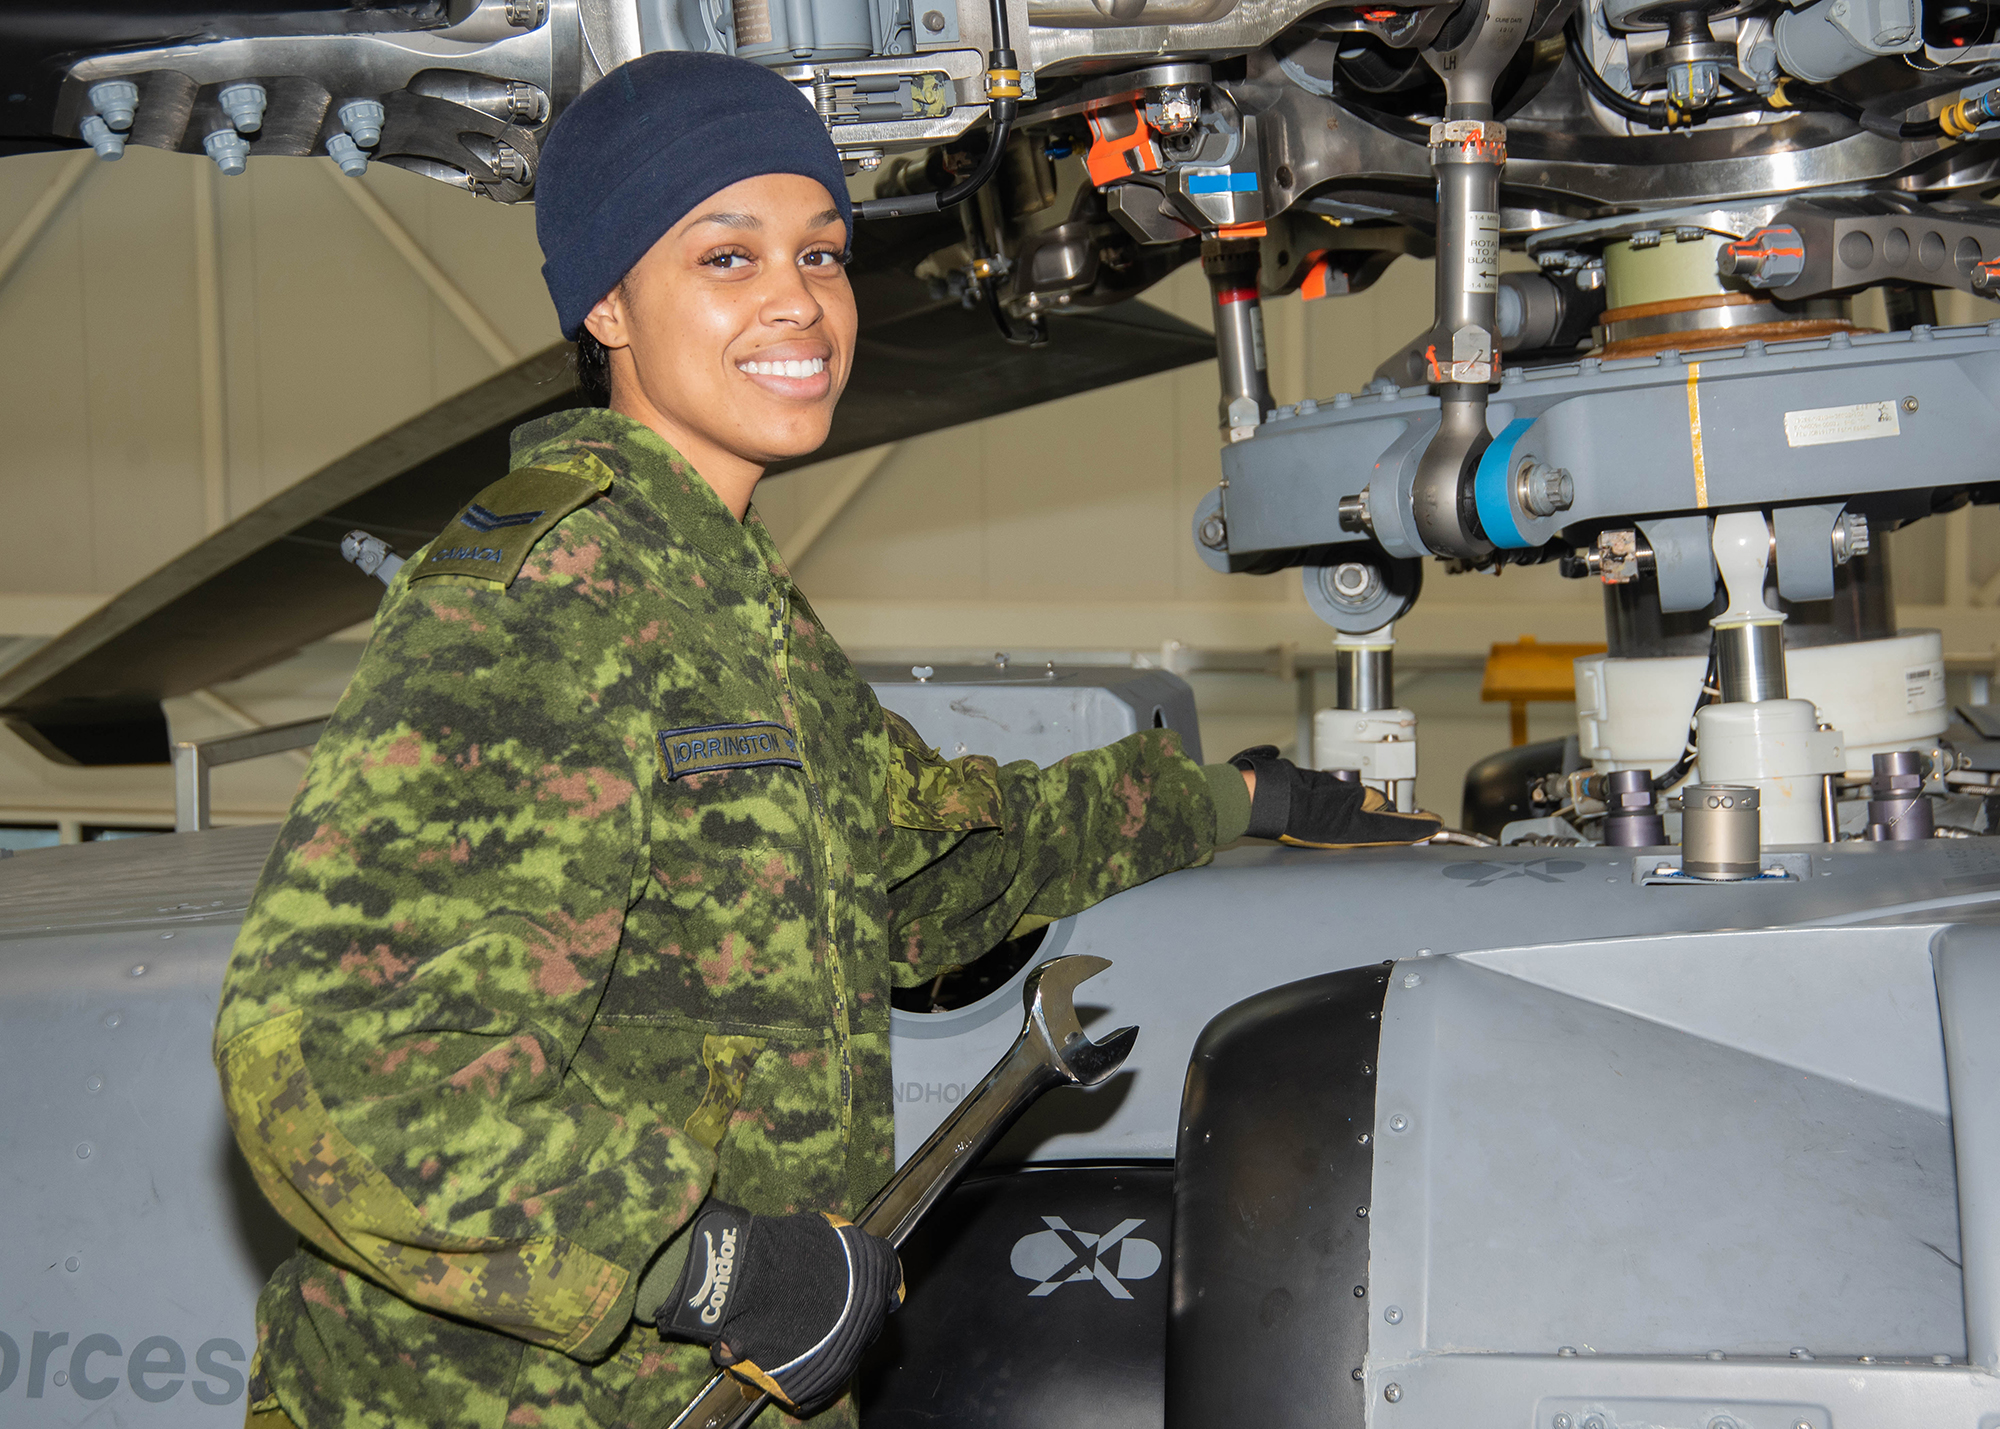 A woman wearing a disruptive pattern uniform, and gloves and a cap, works on the rotor mechanism of a helicopter.